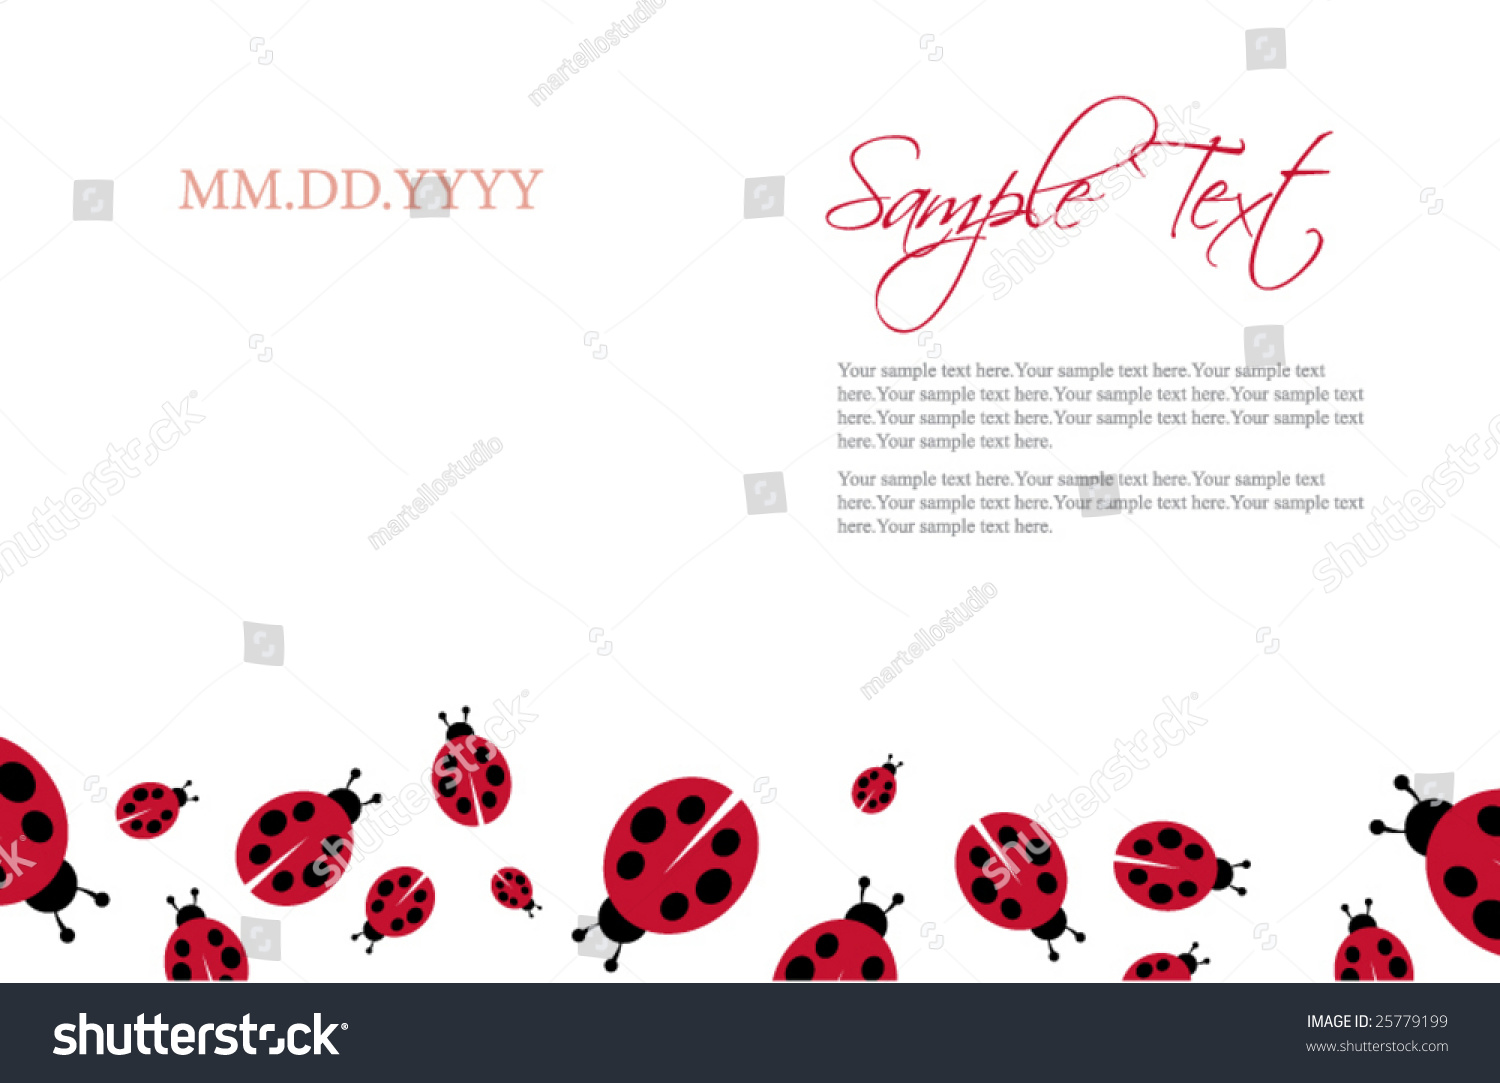 Ladybug invitation template stock vector 25779199 shutterstock ladybug invitation template stopboris Image collections